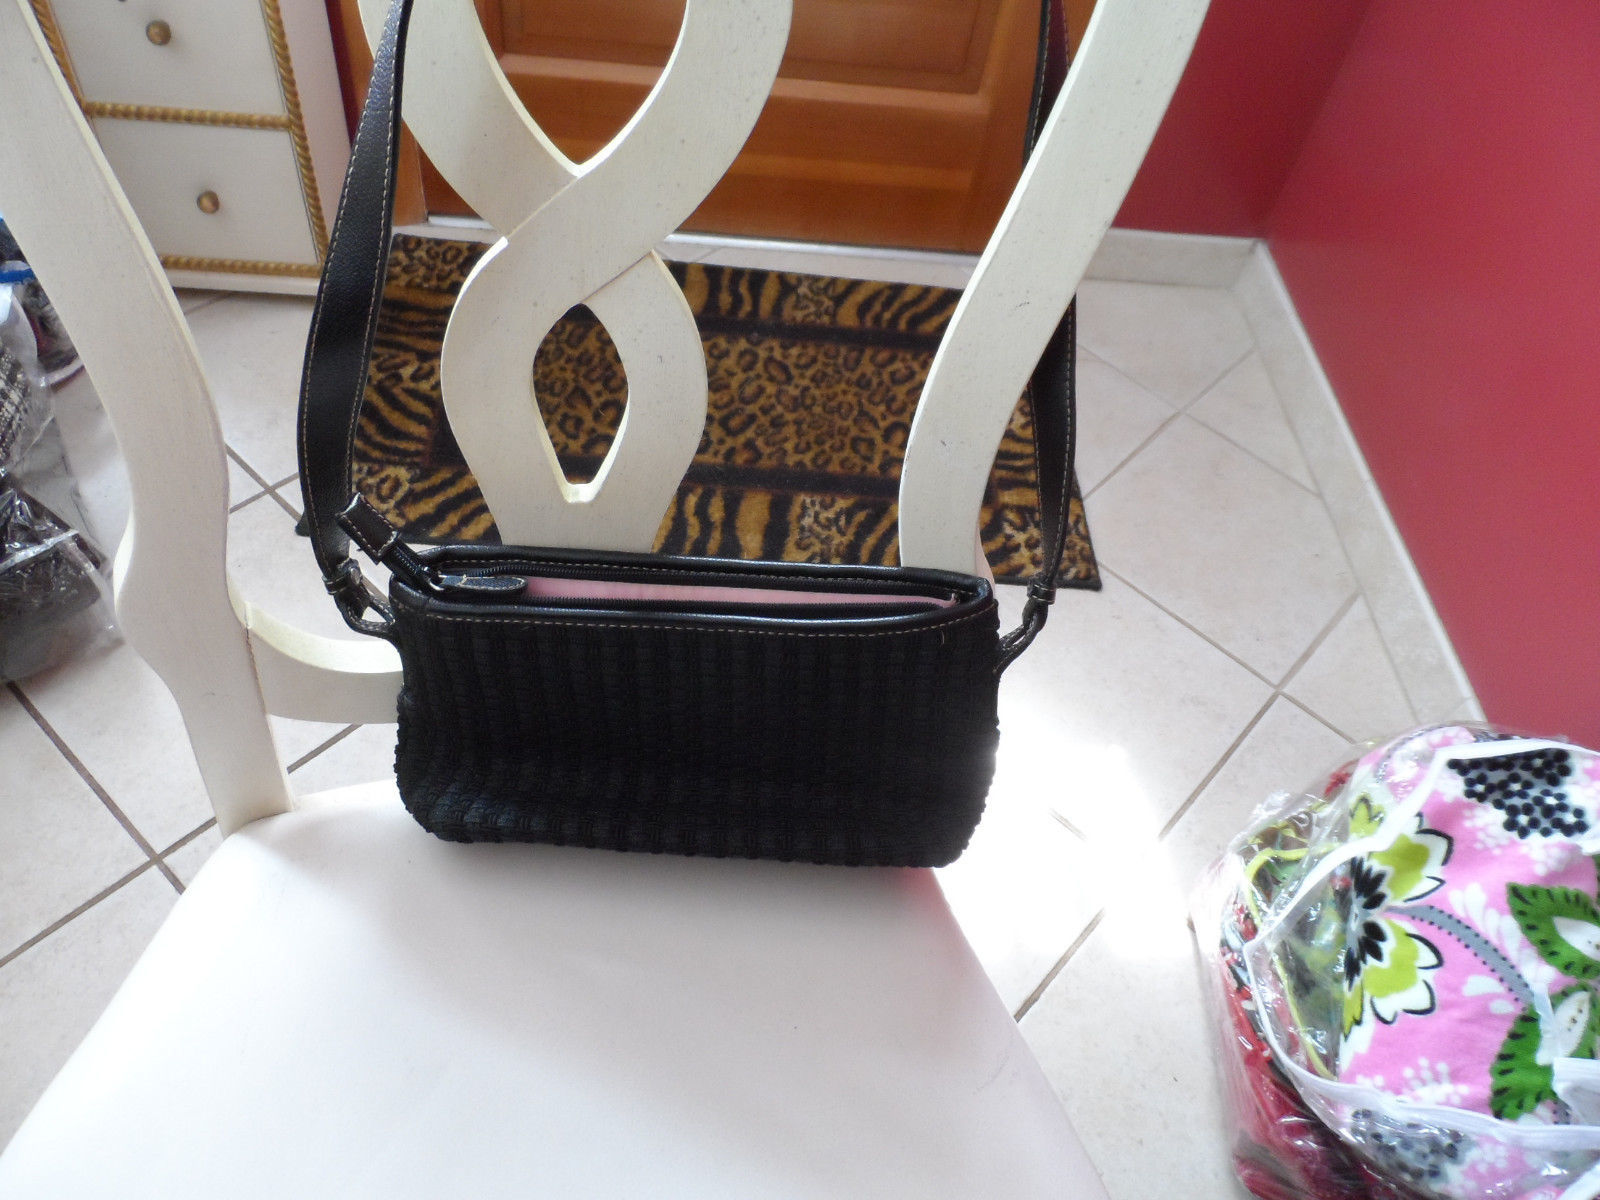 Ladies black woven handbag with pink lining from Liz Claiborne - $11.00